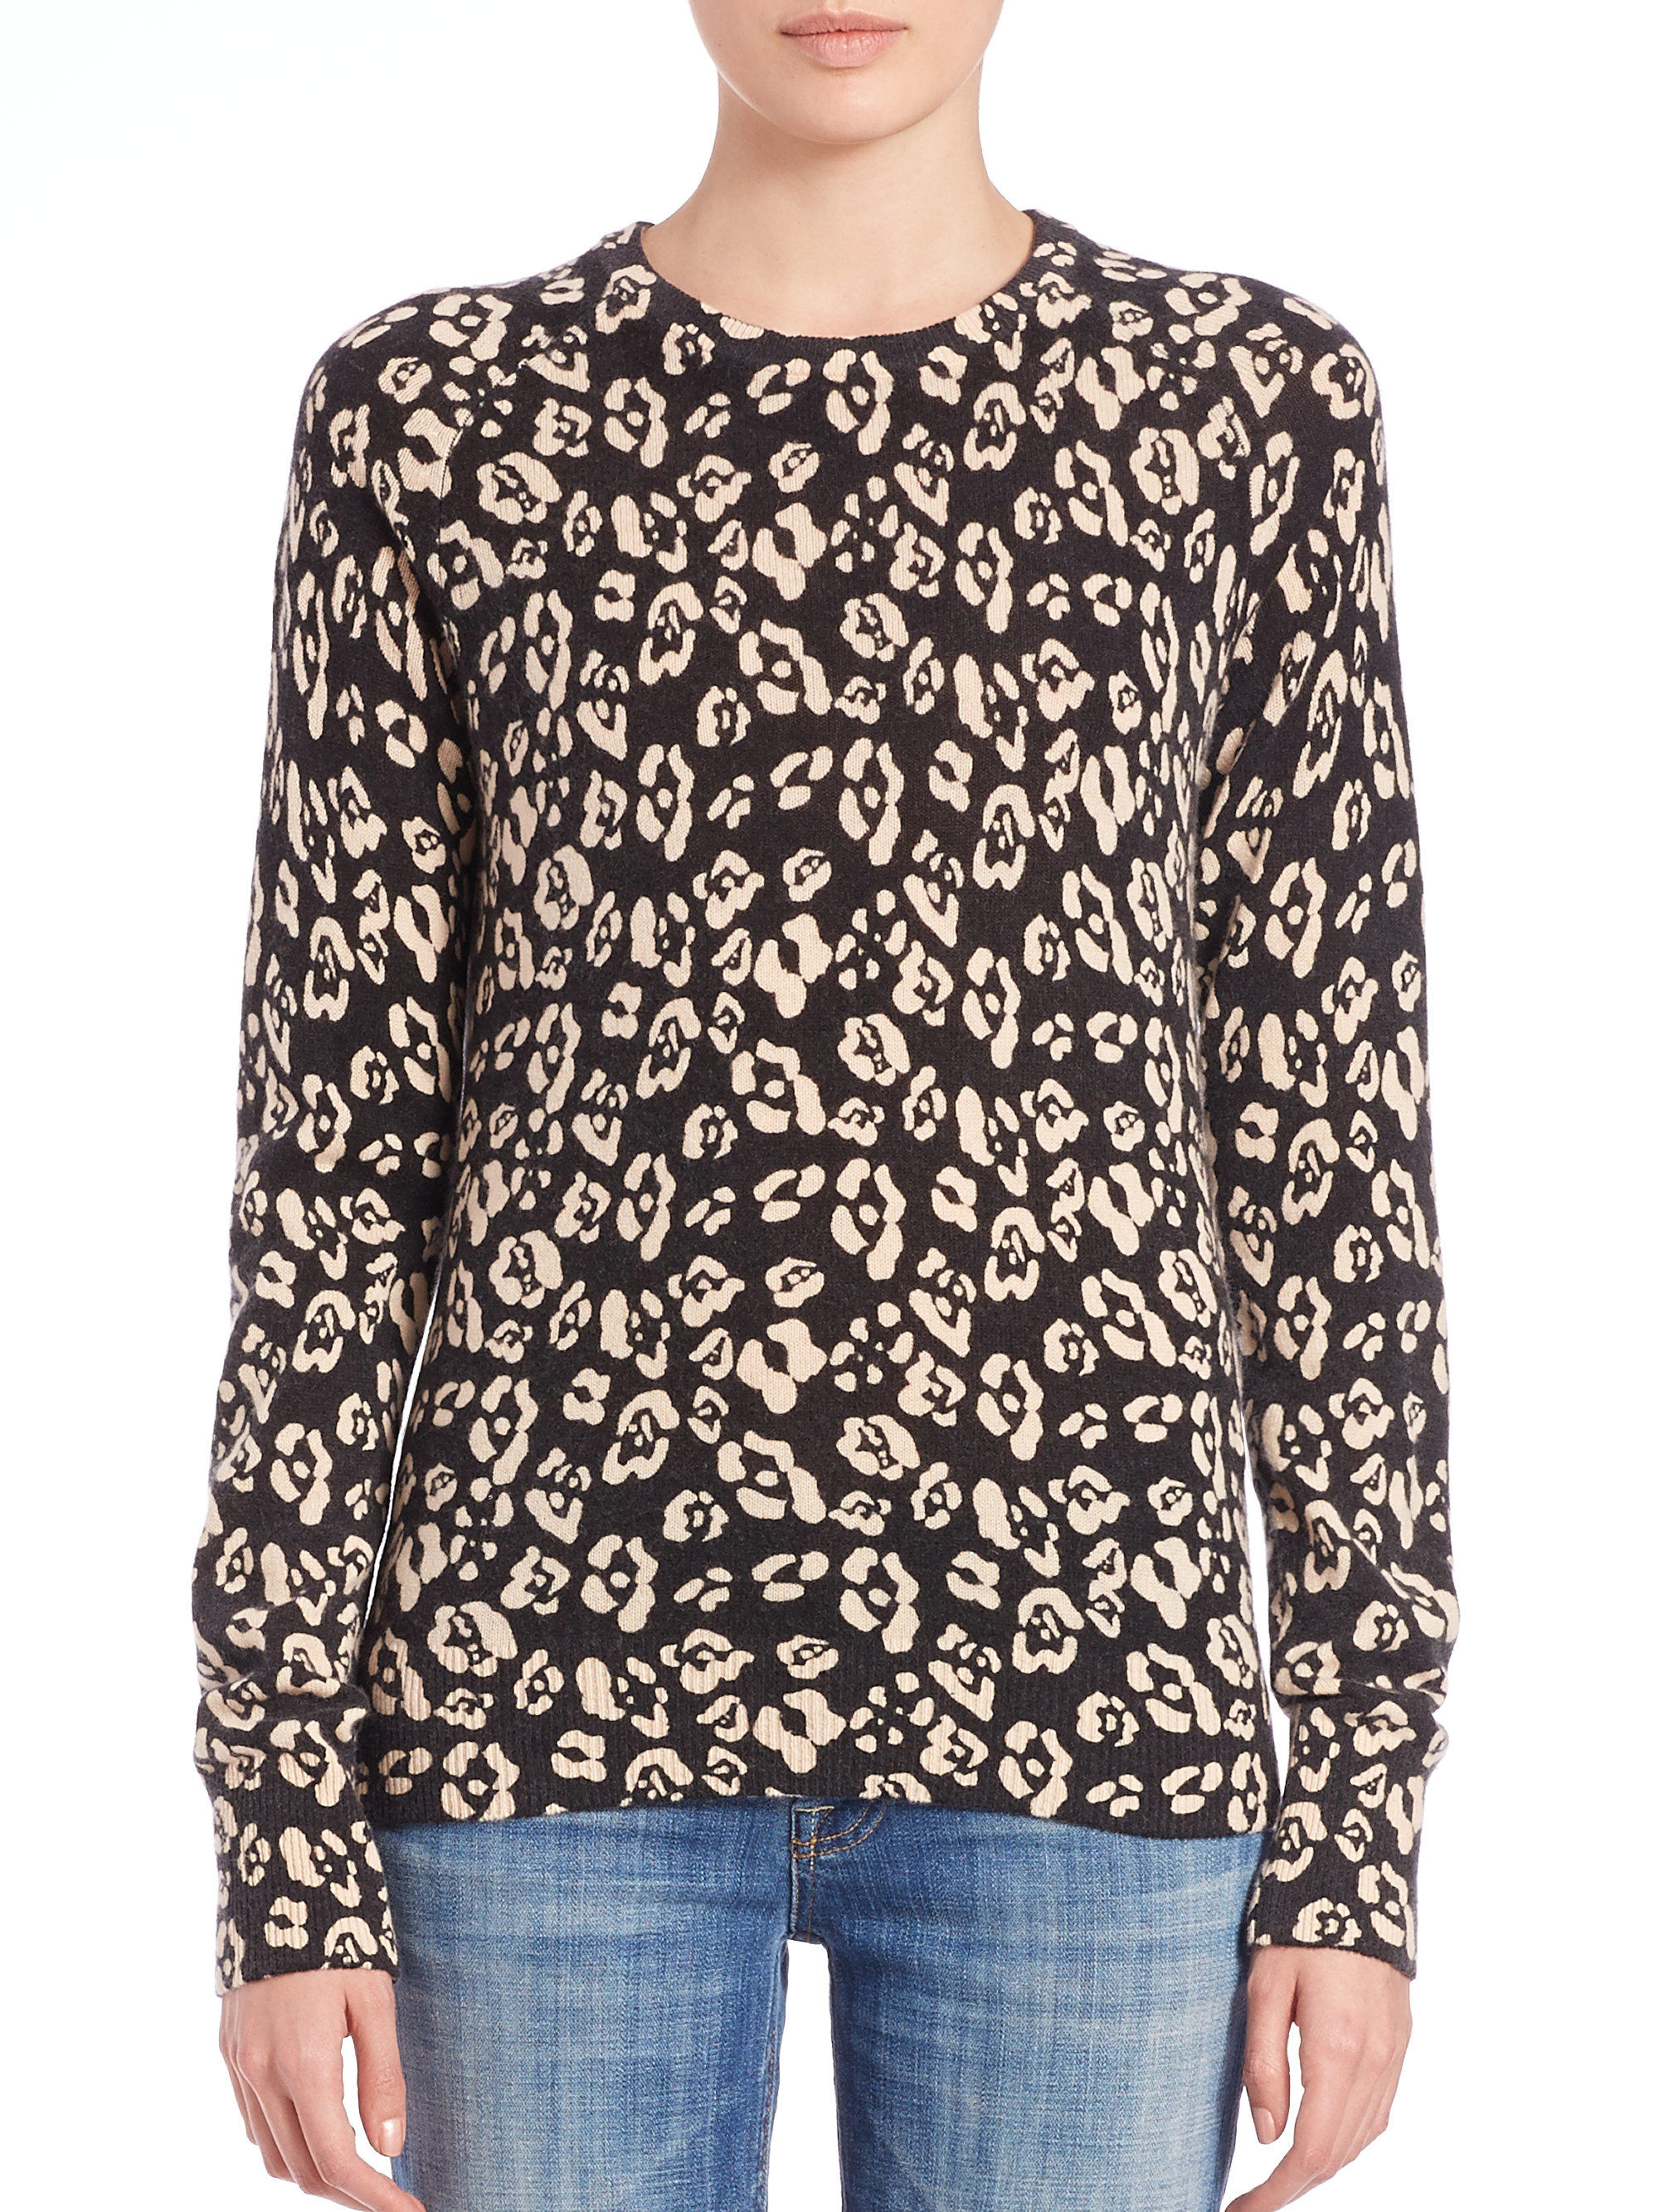 Equipment Sloane Leopard-print Cashmere Sweater | Lyst